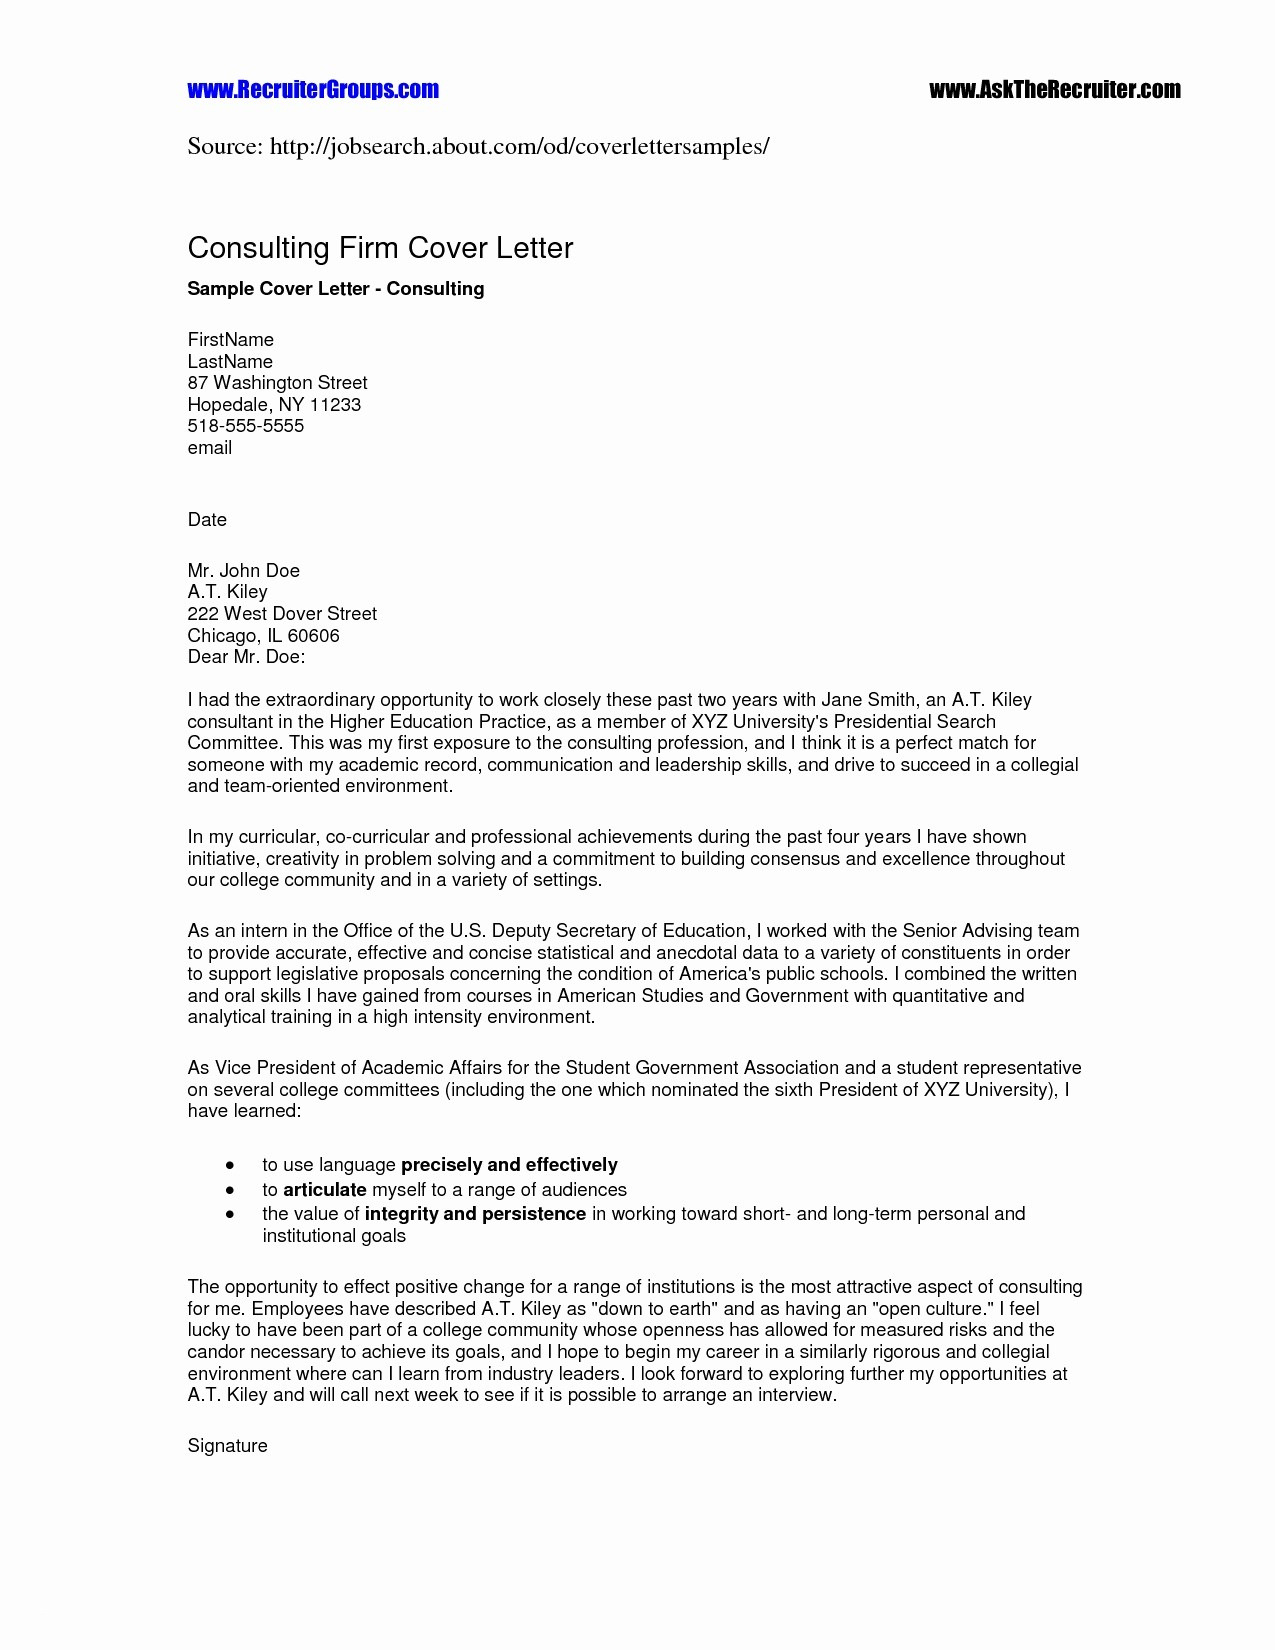 Job Application Letter Template Word - Teachers Resume Cover Letter Awesome Teacher Cover Letter Template